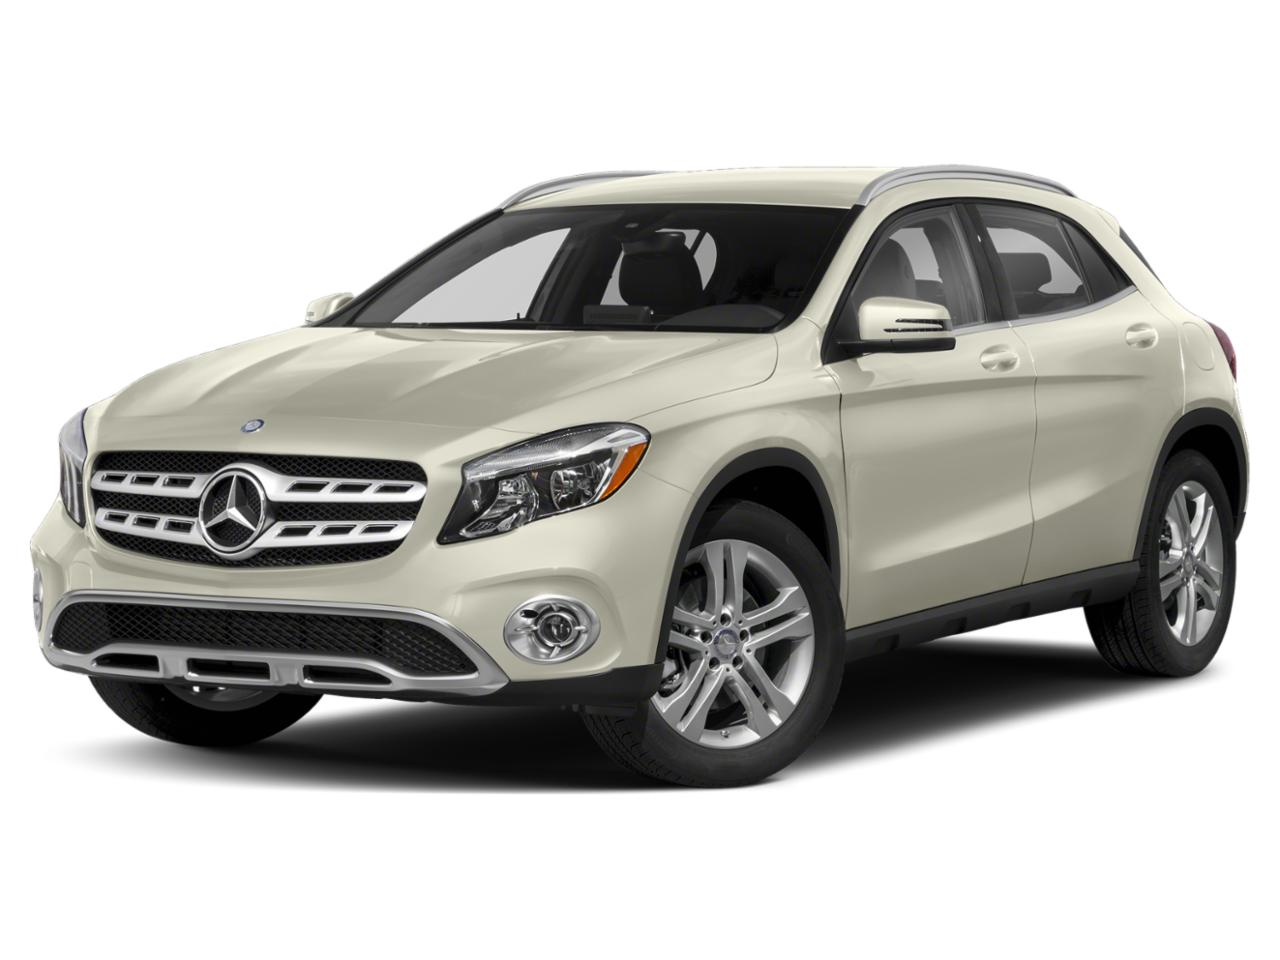 learn about this 2019 mercedes benz gla for sale in tacoma wa vin wdctg4gb9kj585269 sn 2153 gilchrist chevrolet buick gmc